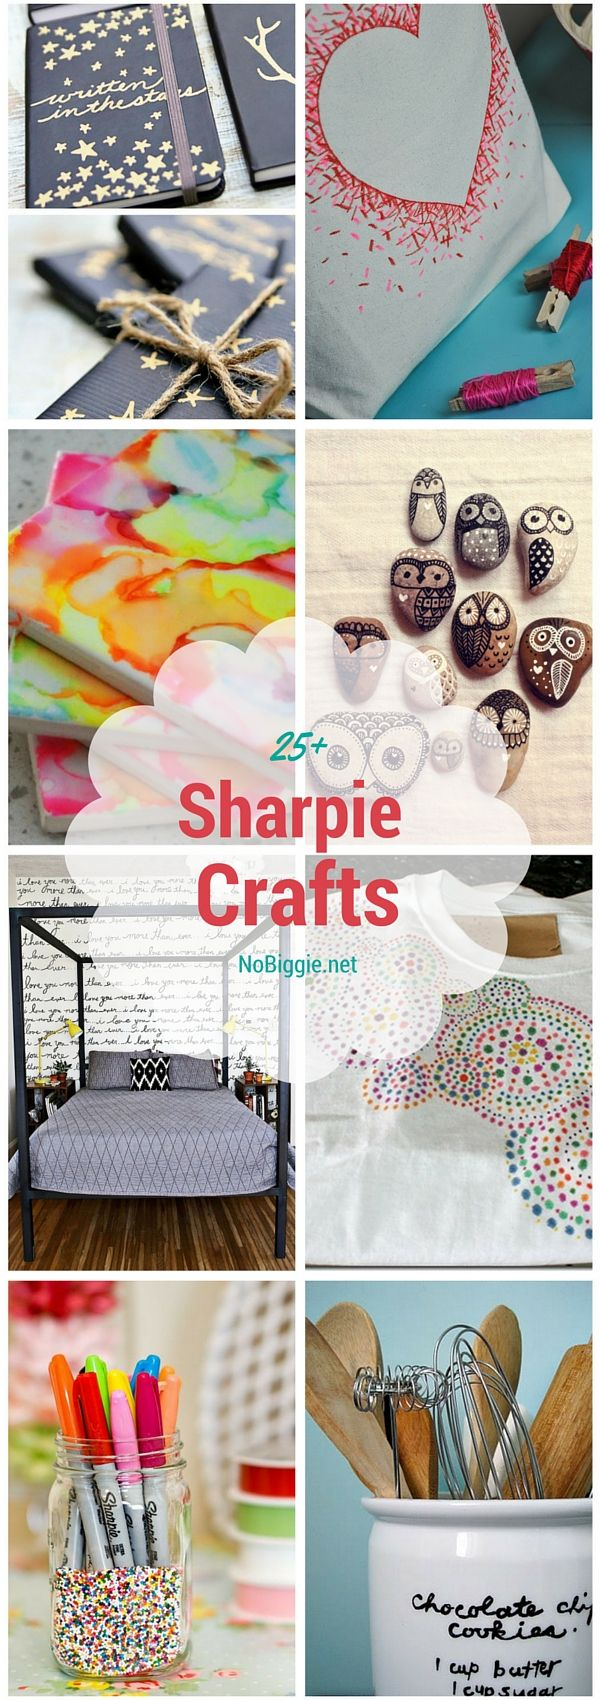 25+ Sharpie crafts | NoBiggie.net